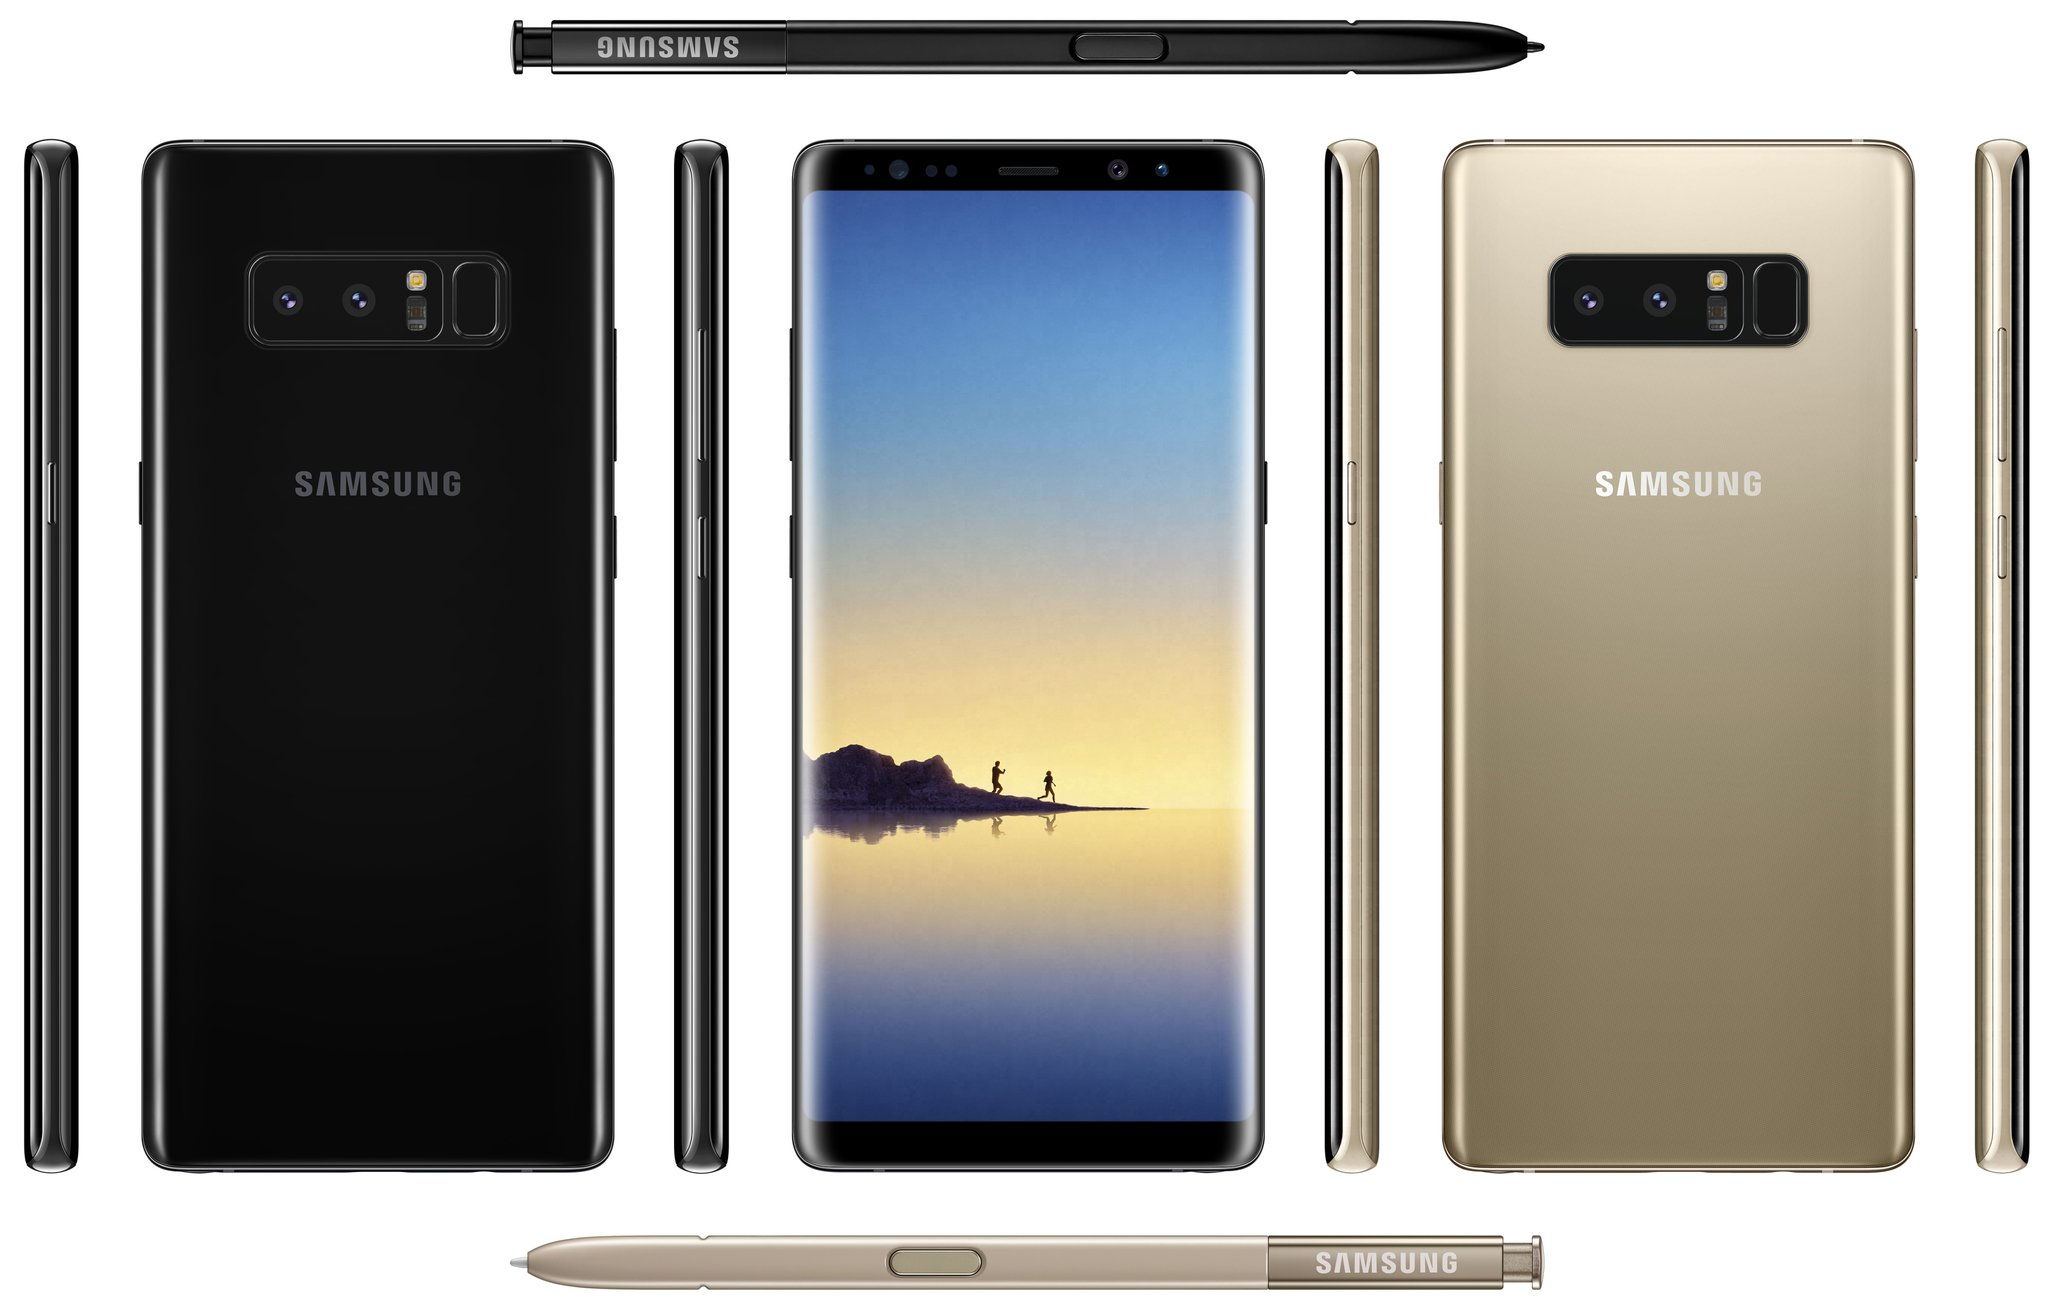 The Samsung Galaxy Note 8 Is Finally Here And Its Pretty Much Exactly What We Expected After Last Years Debacle With 7 Played It Safe